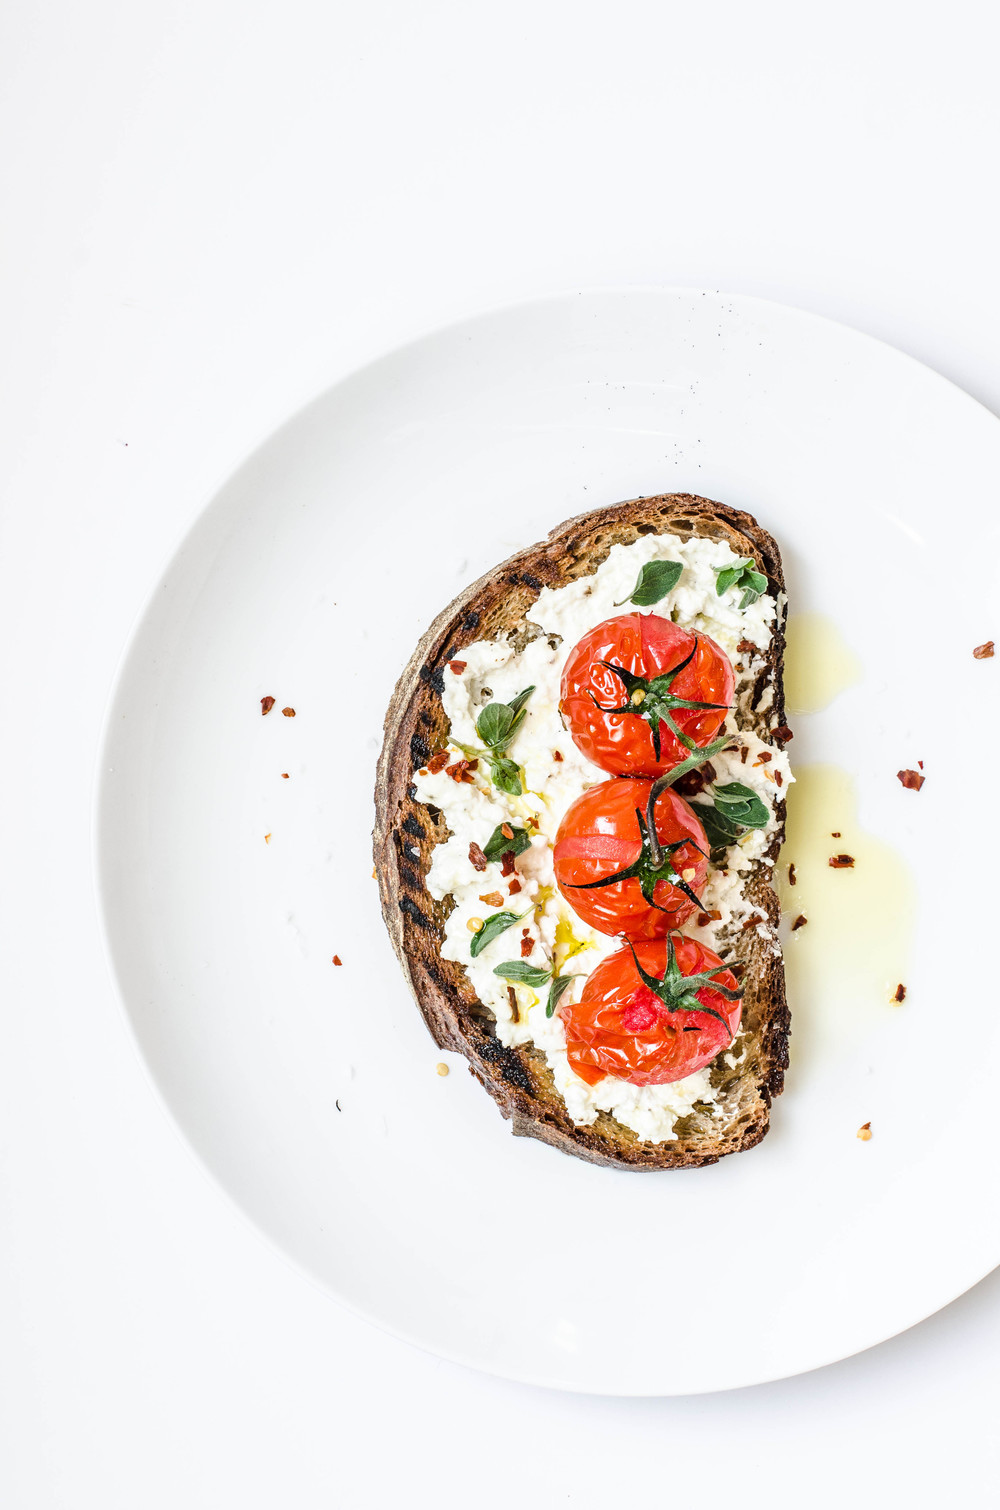 rose & ivy journal whipped ricotta and tomato crostini